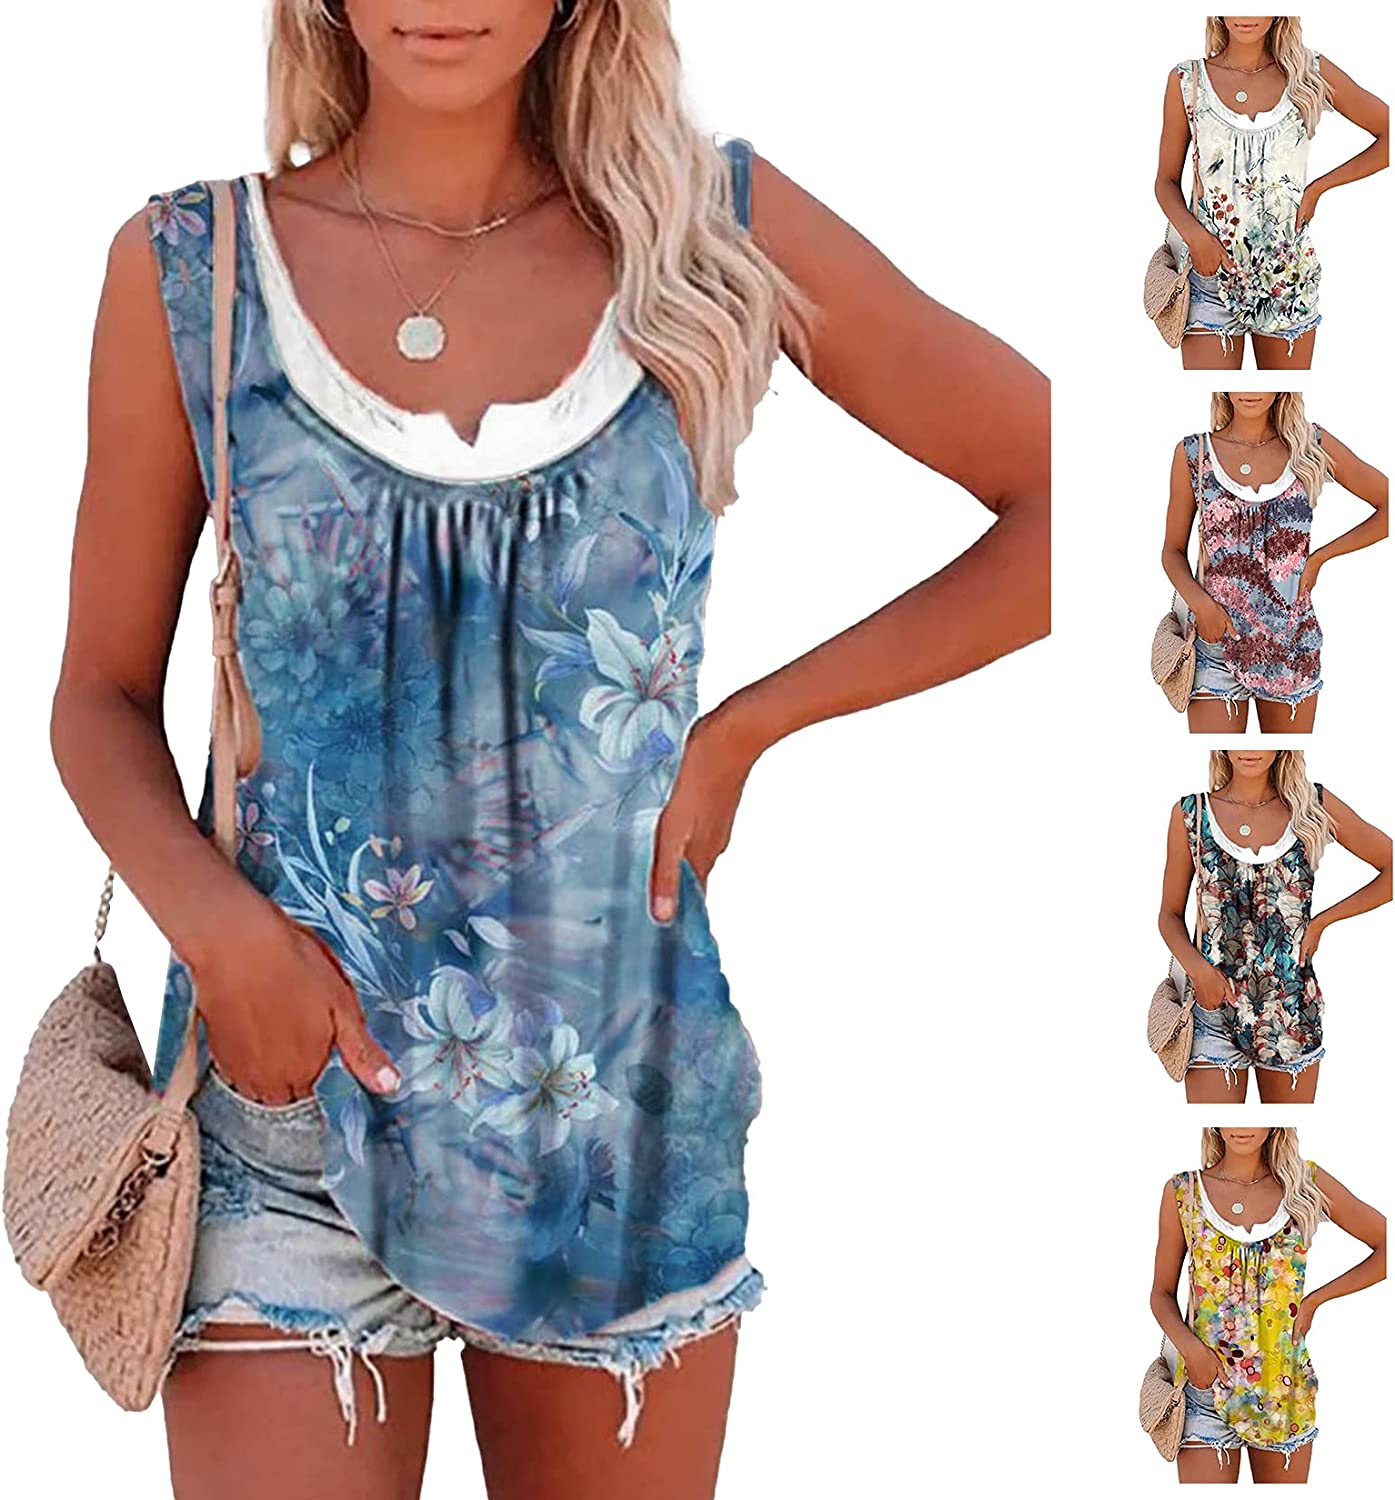 Bohemian Print Round Neck Casual top Loose T-Shirt Women Fashion Sleeveless Vest for Ladies